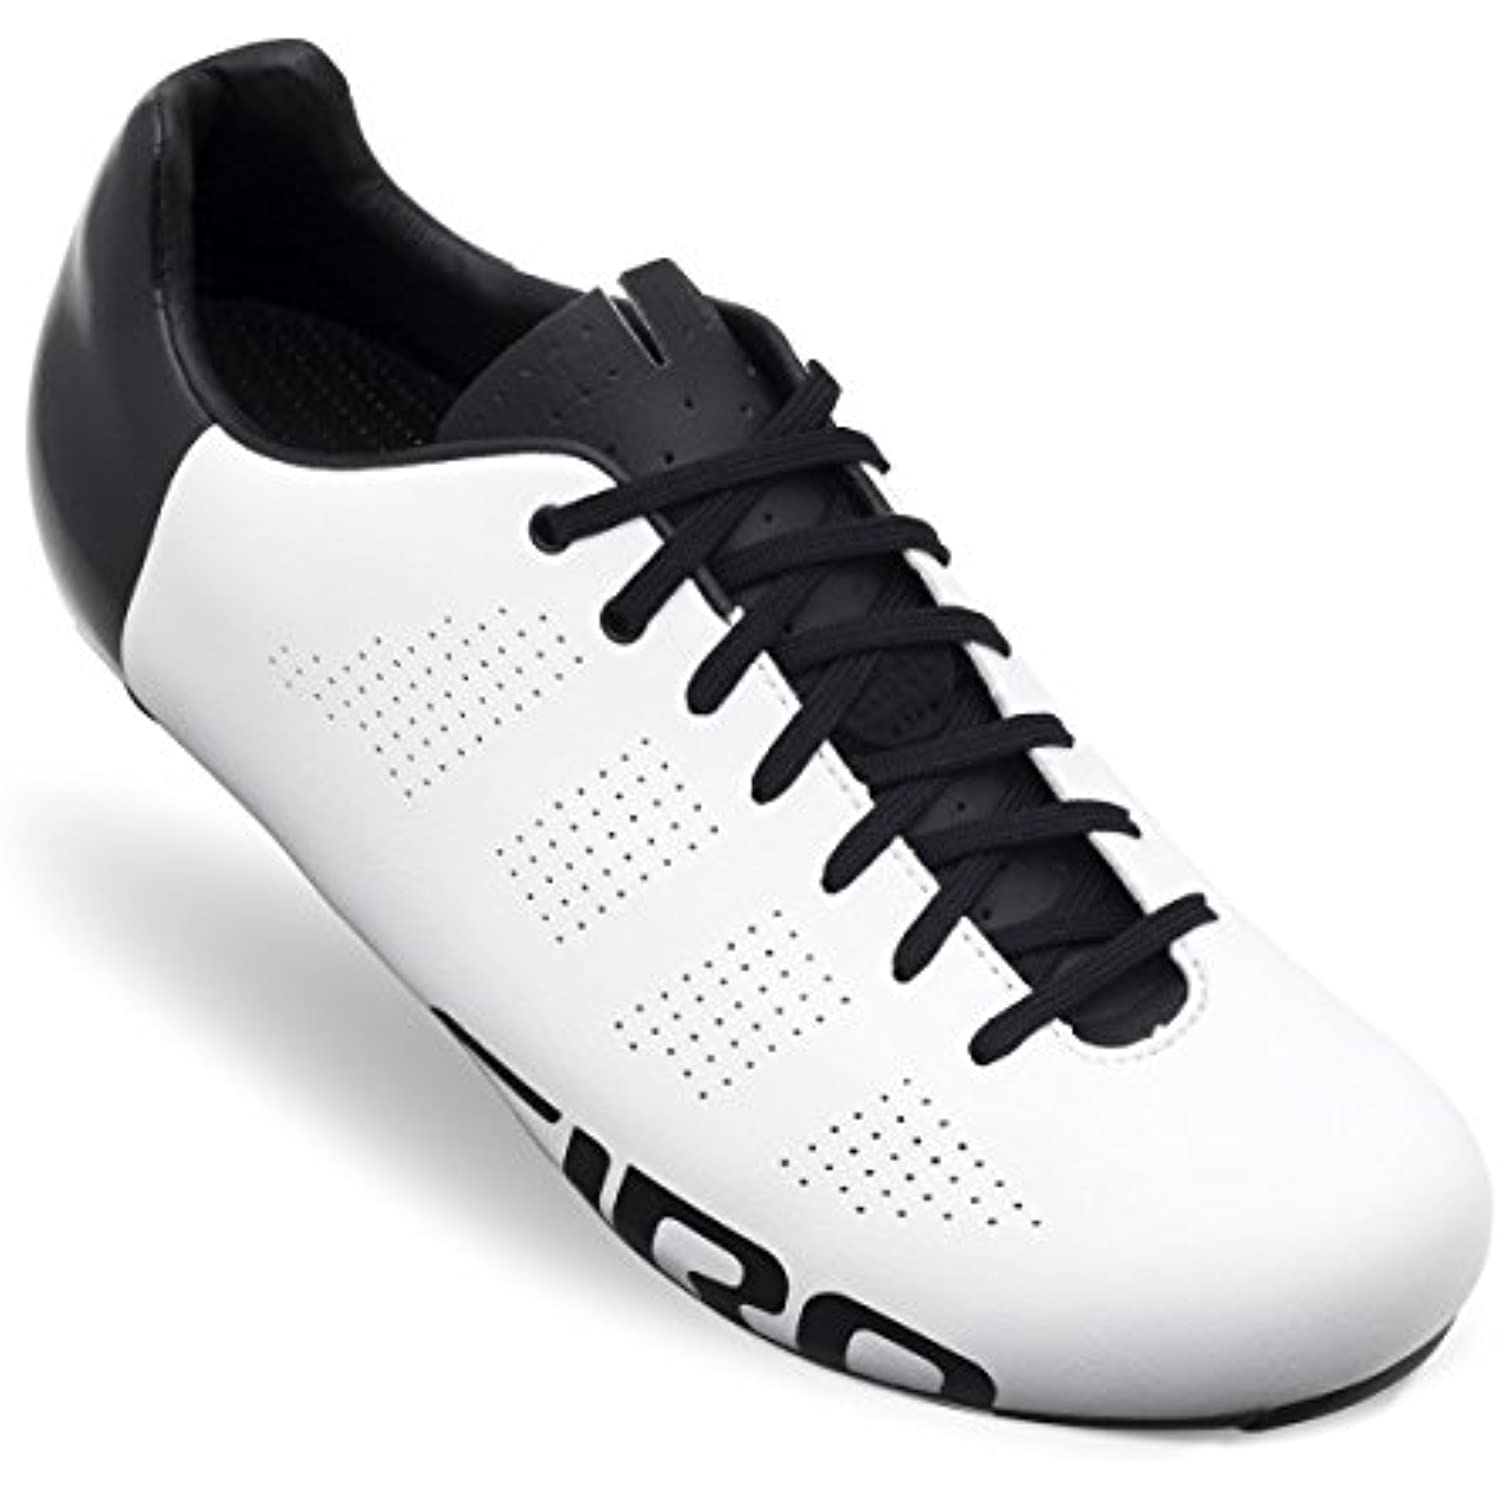 Giro Empire Road, Chaussures Chaussures Road, de Vélo de Route Homme, Multicolore (White/Black 000), 44.5 EU - B00GCBAH6I - a0a3d9